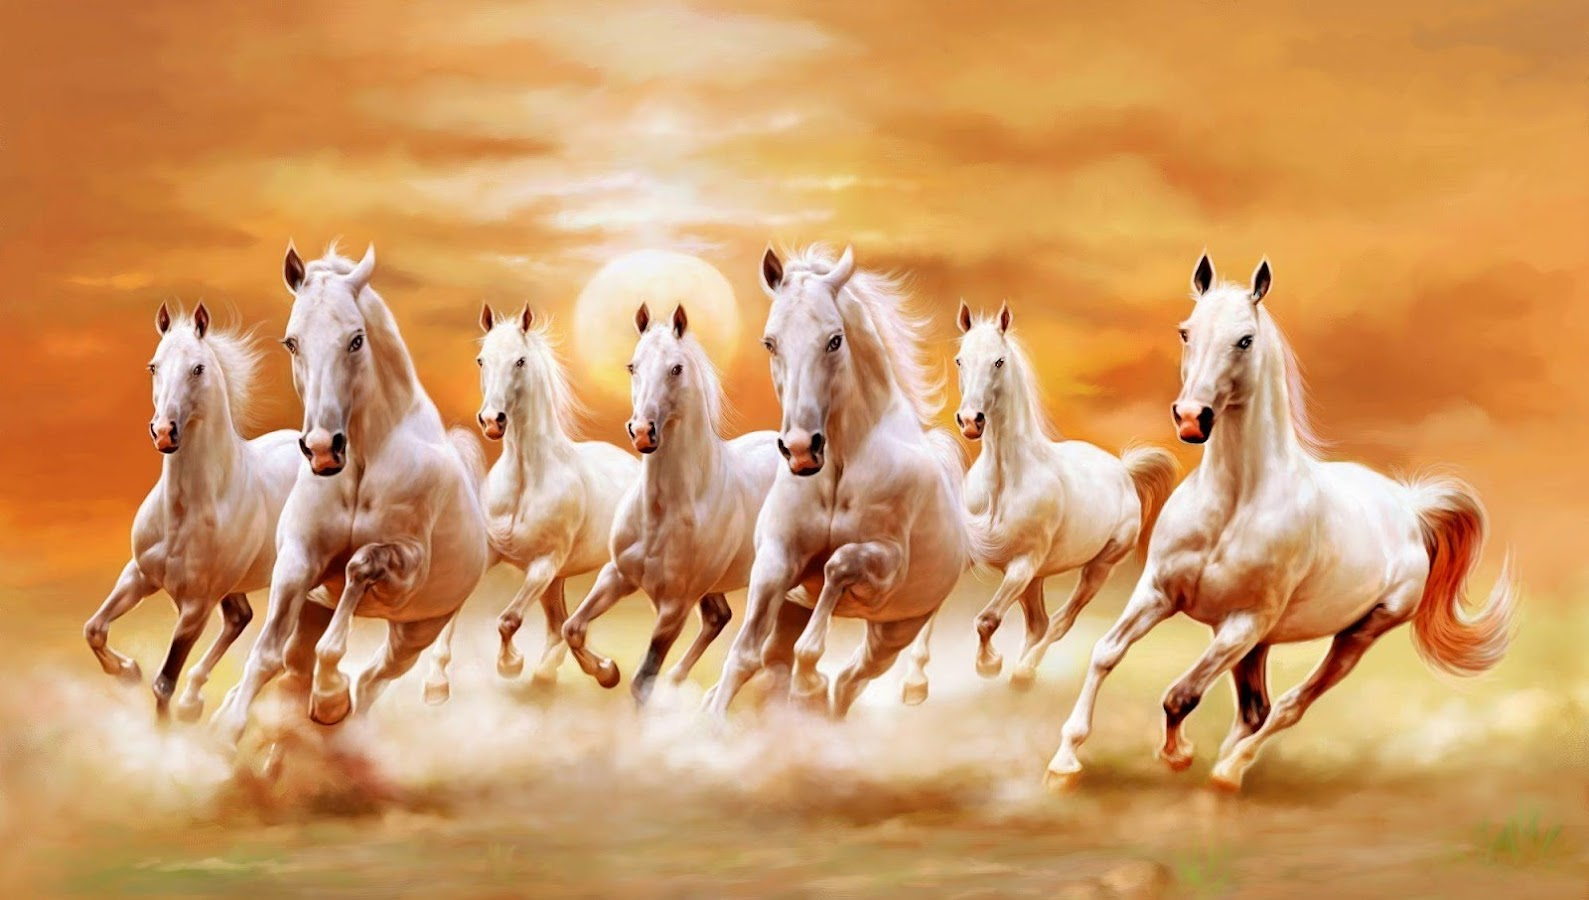 Seven Horses Wallpaper 7 117 APK Download Android